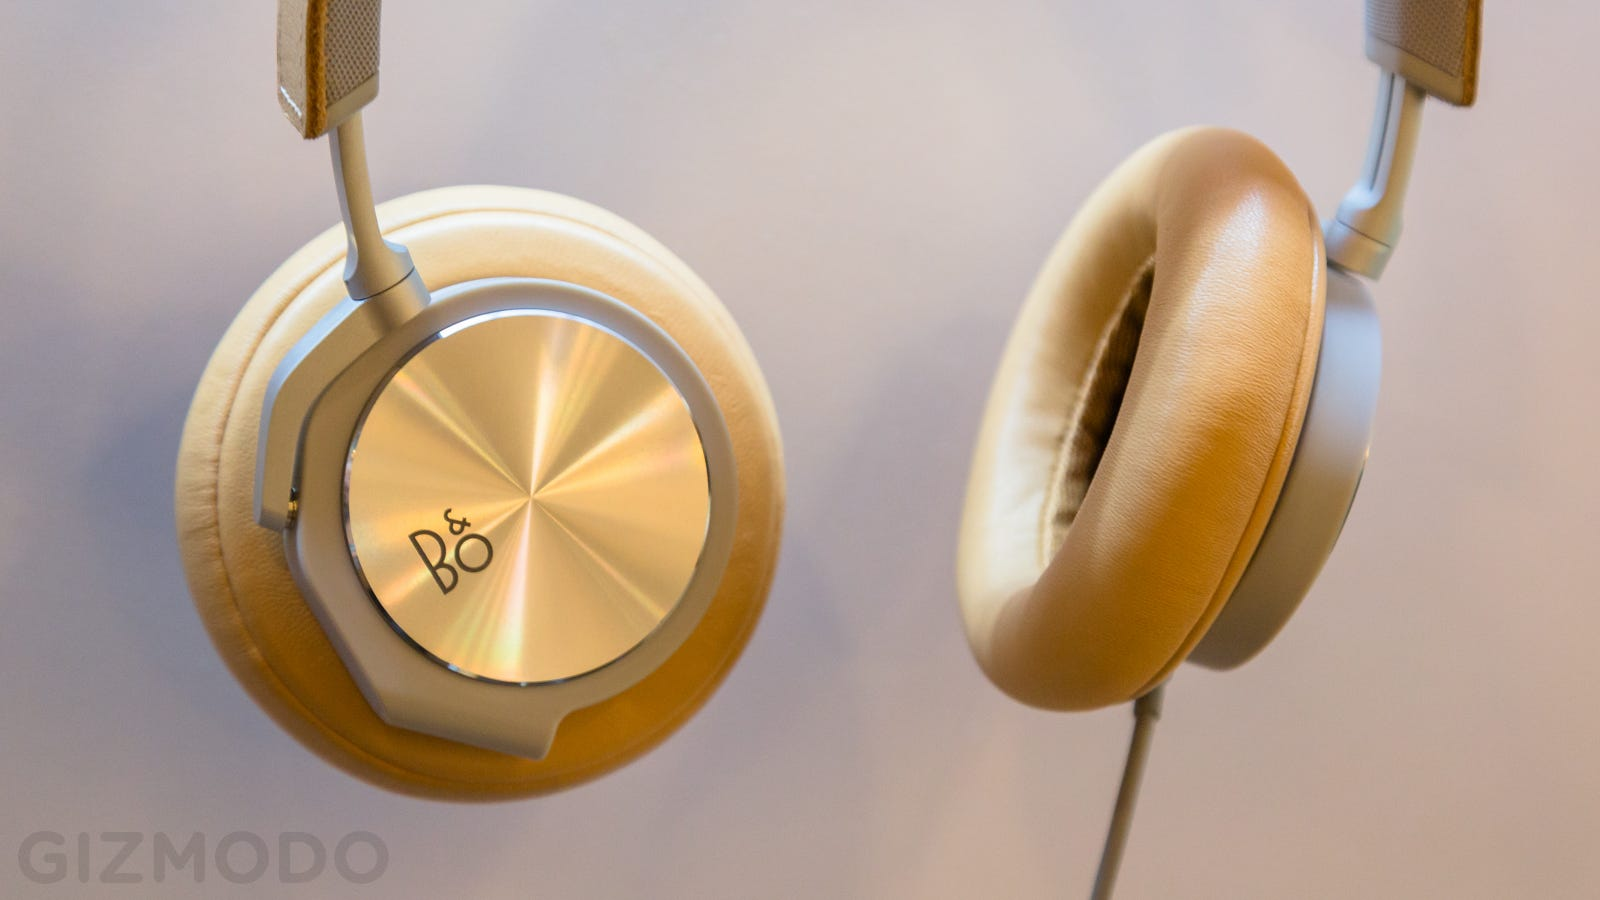 earbud bose - B&O H6 Headphones Are So Beautiful and Fancy They'll Fool Your Brain